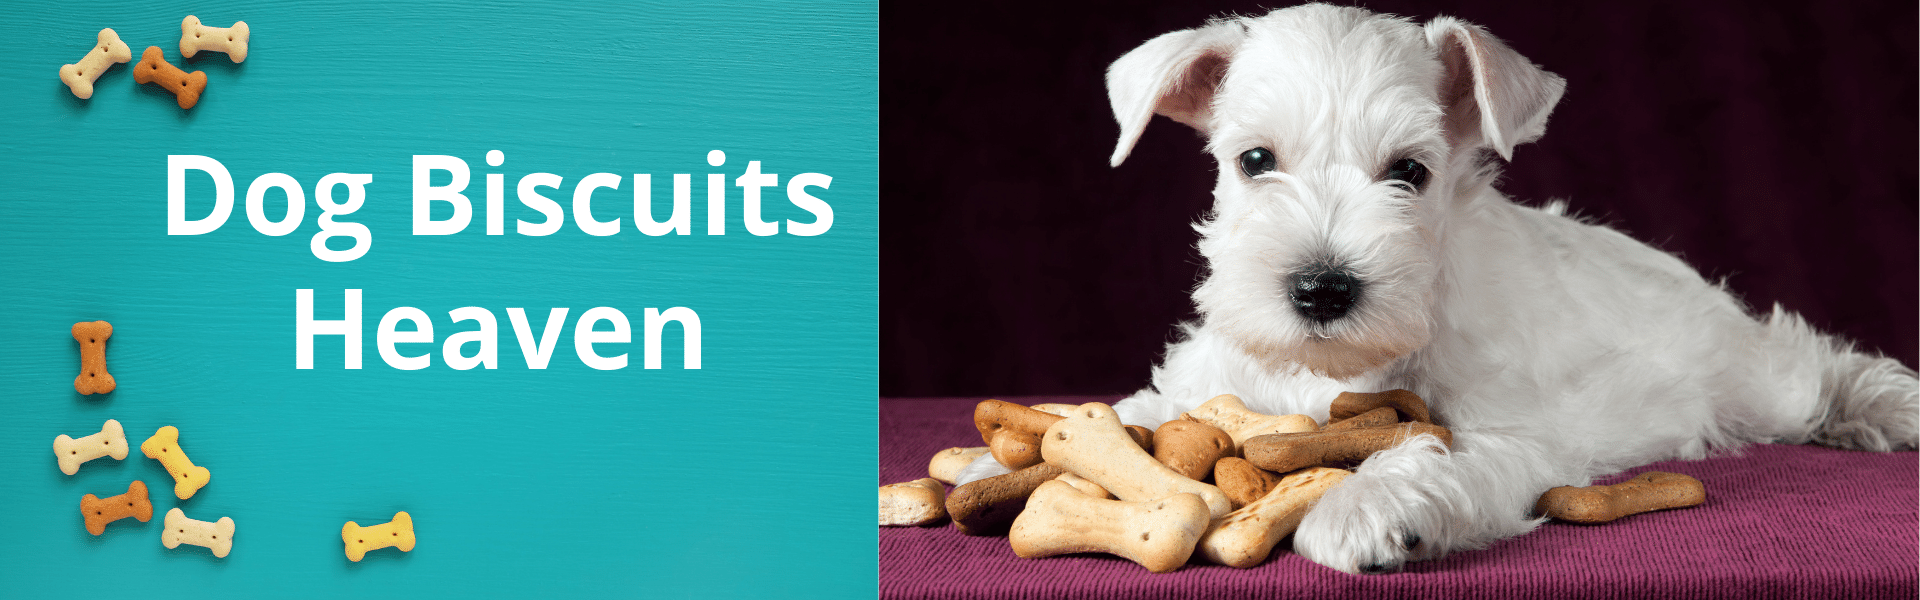 Dog Biscuits for Dogs and Puppies